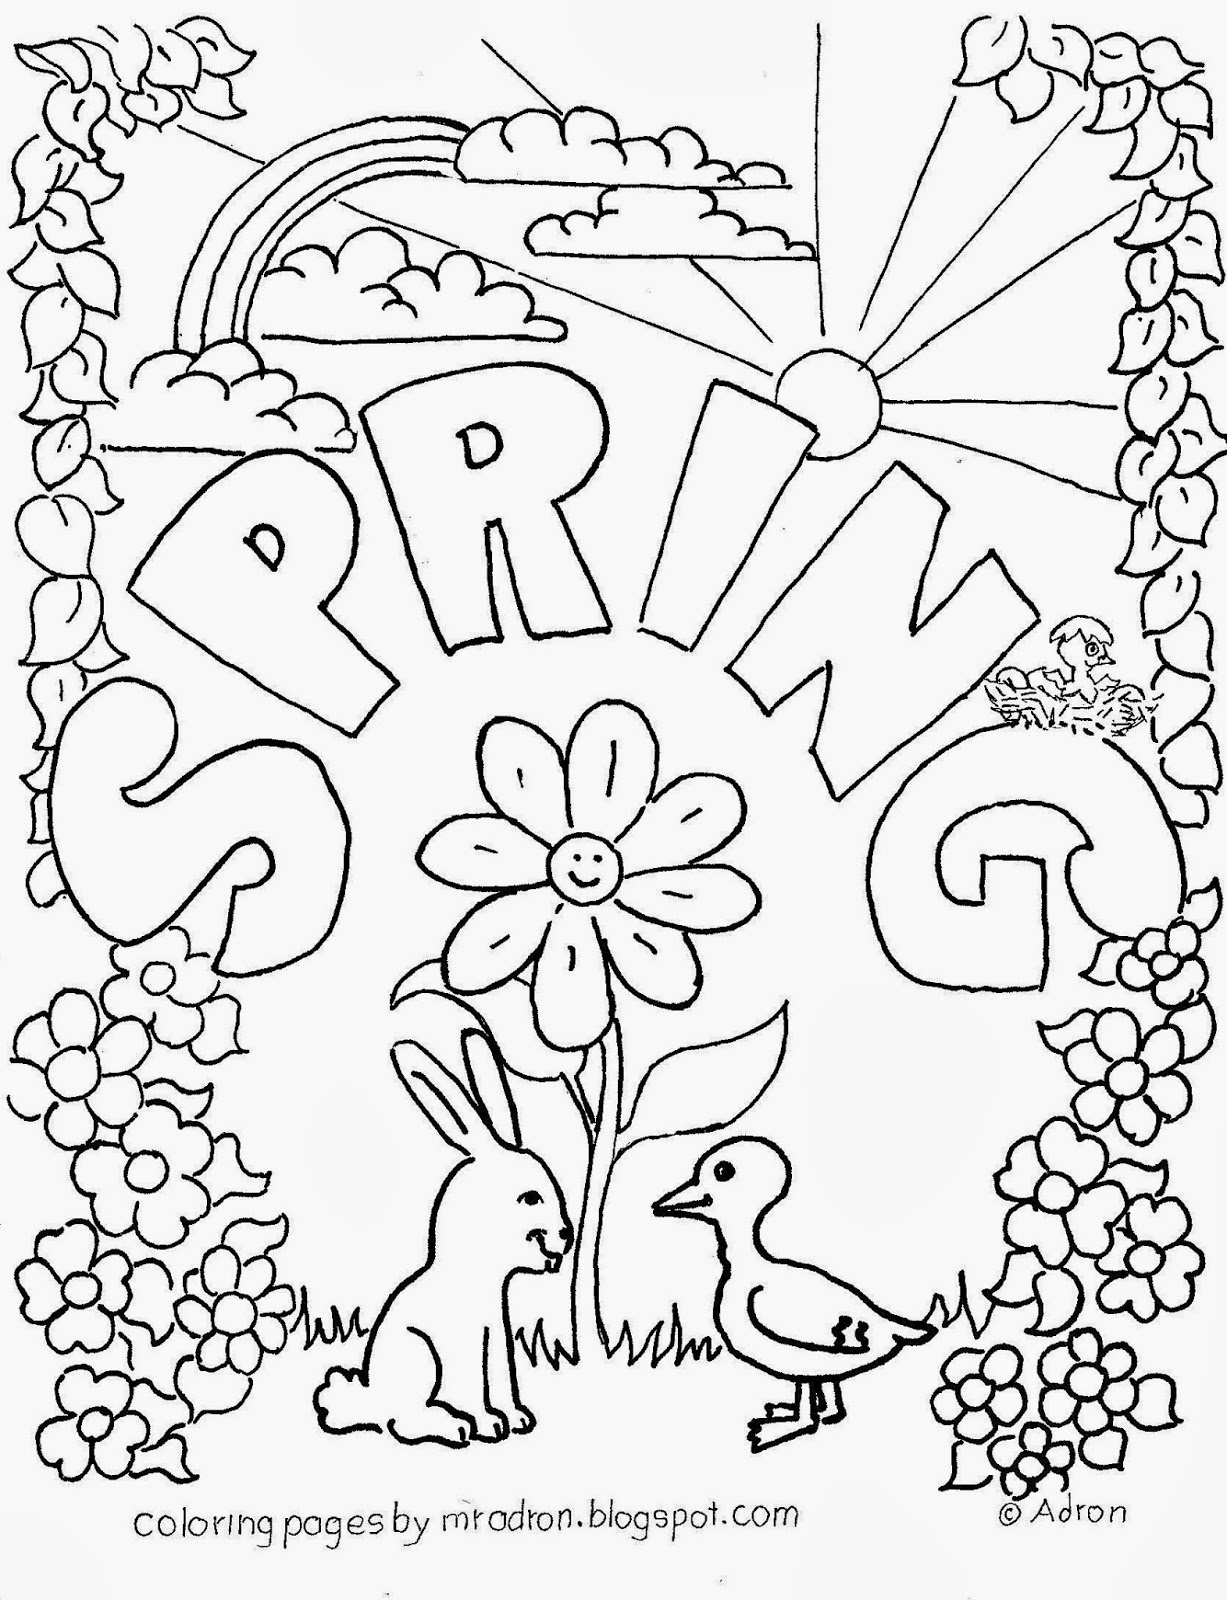 Spring coloring pages for adults free - Coloring Pages For Kids By Mr Adron Spring Free Coloring Page For